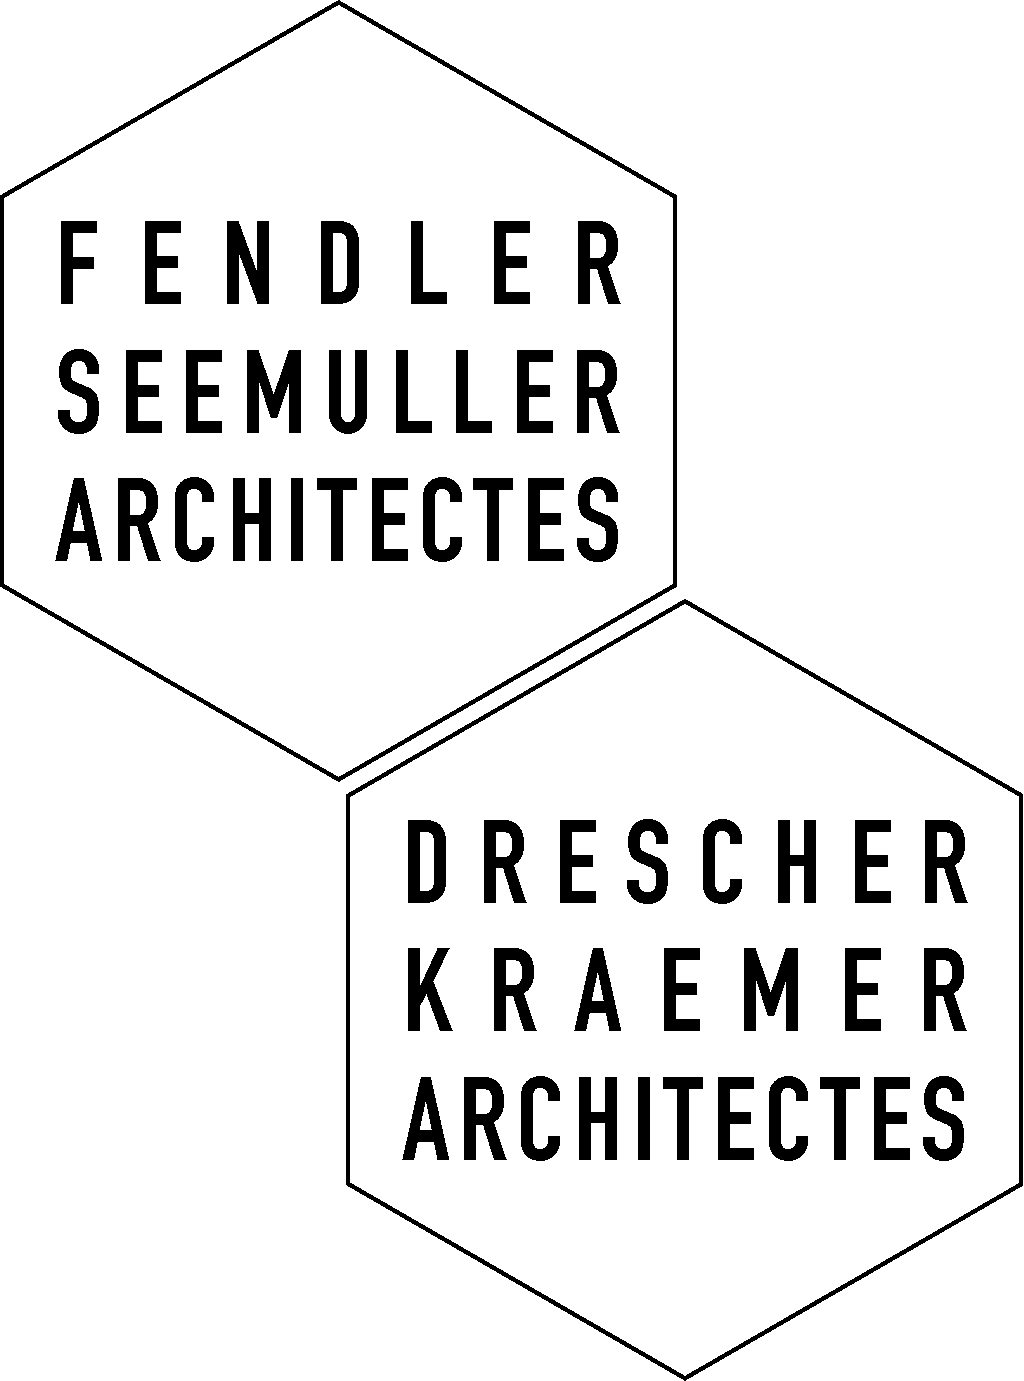 Fendler Seemuller architectes